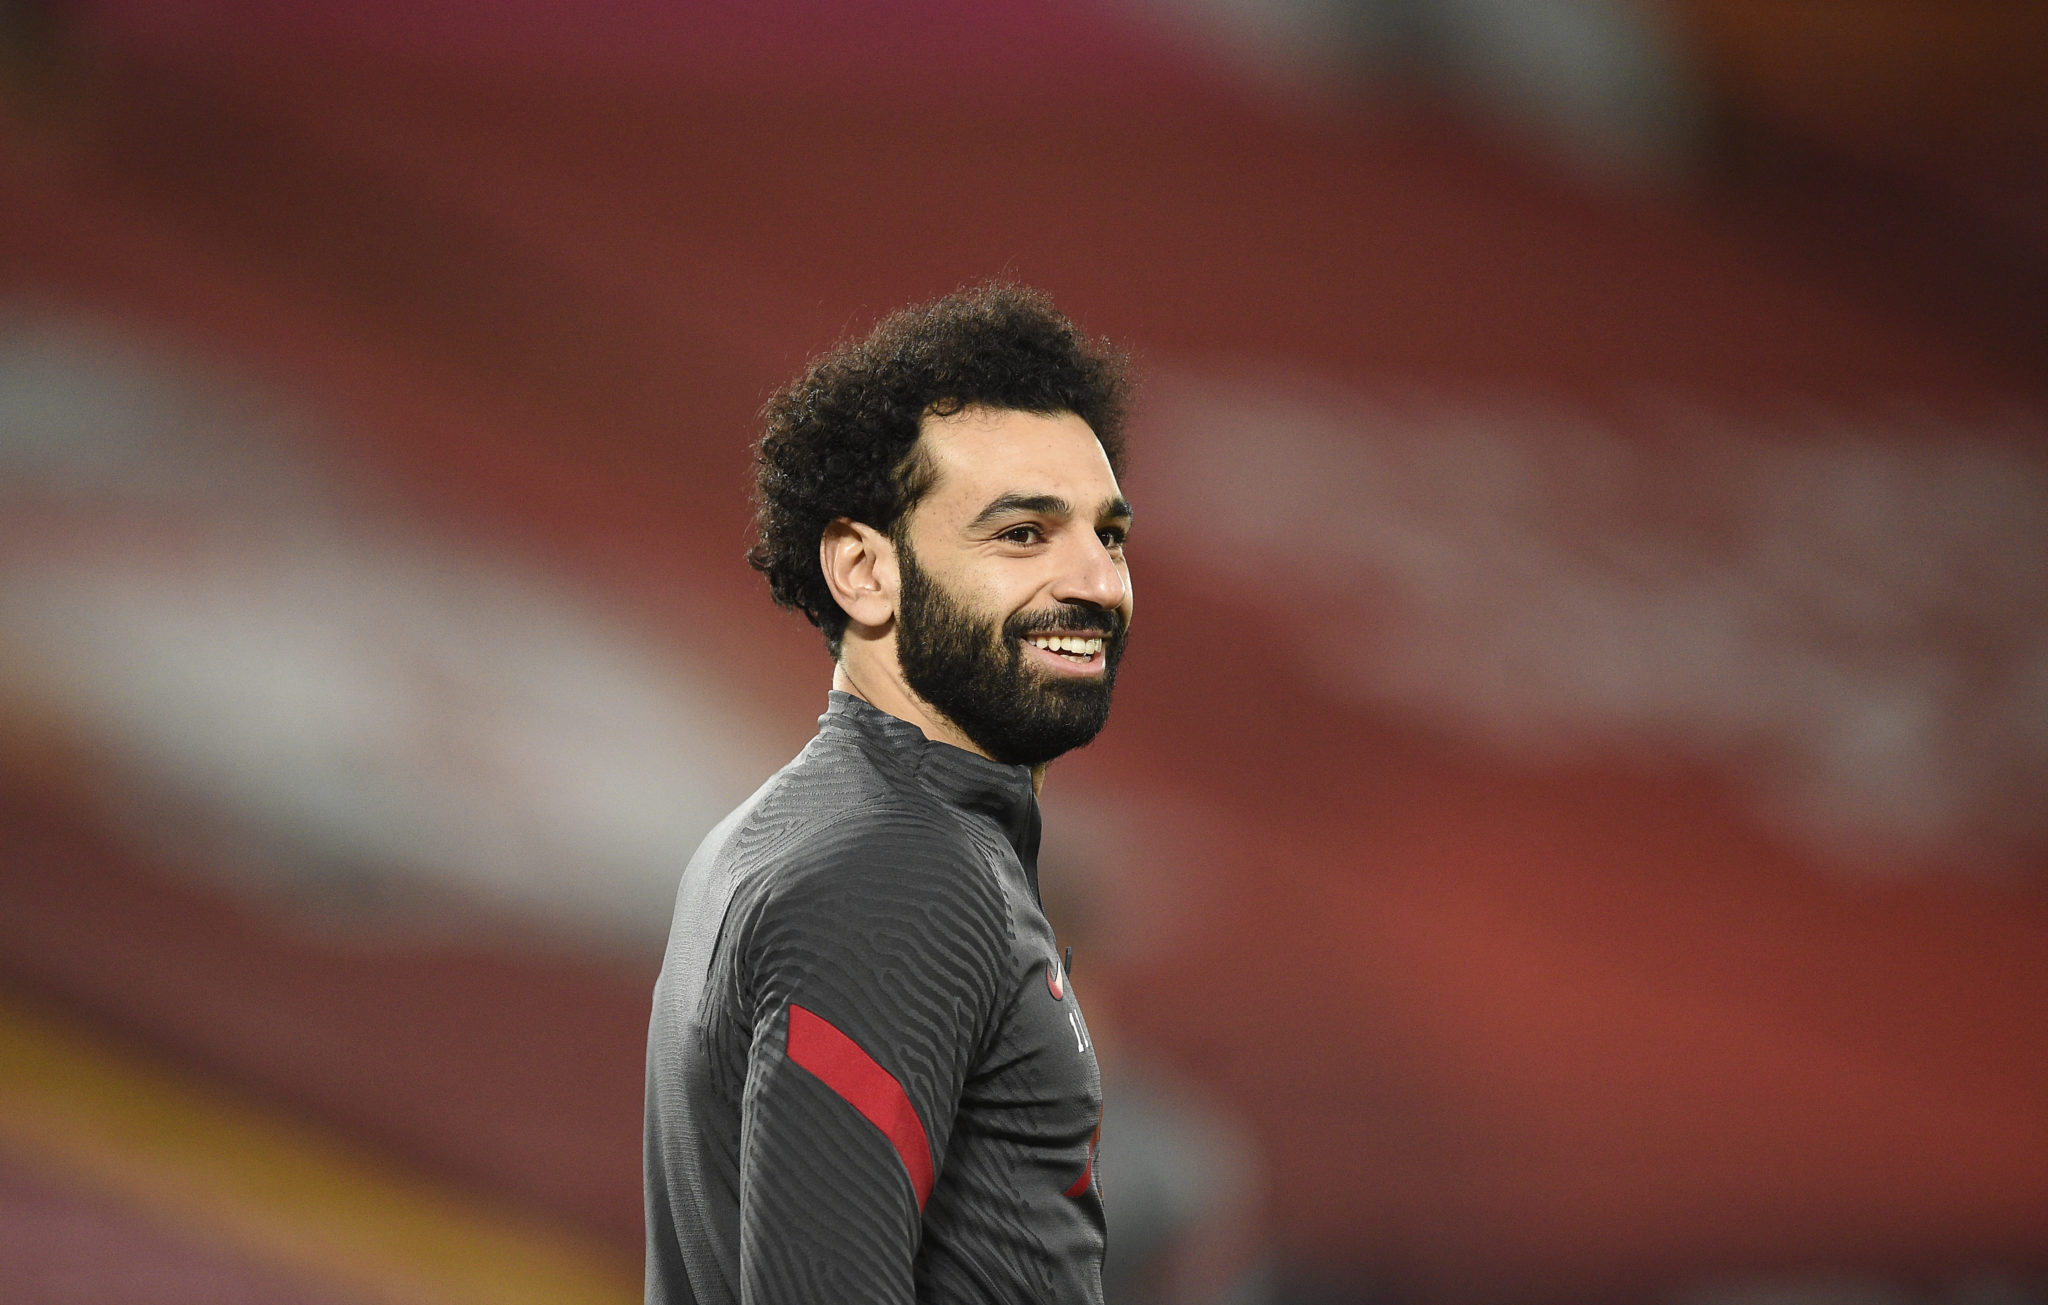 Mohamed Salah warms up for Liverpool